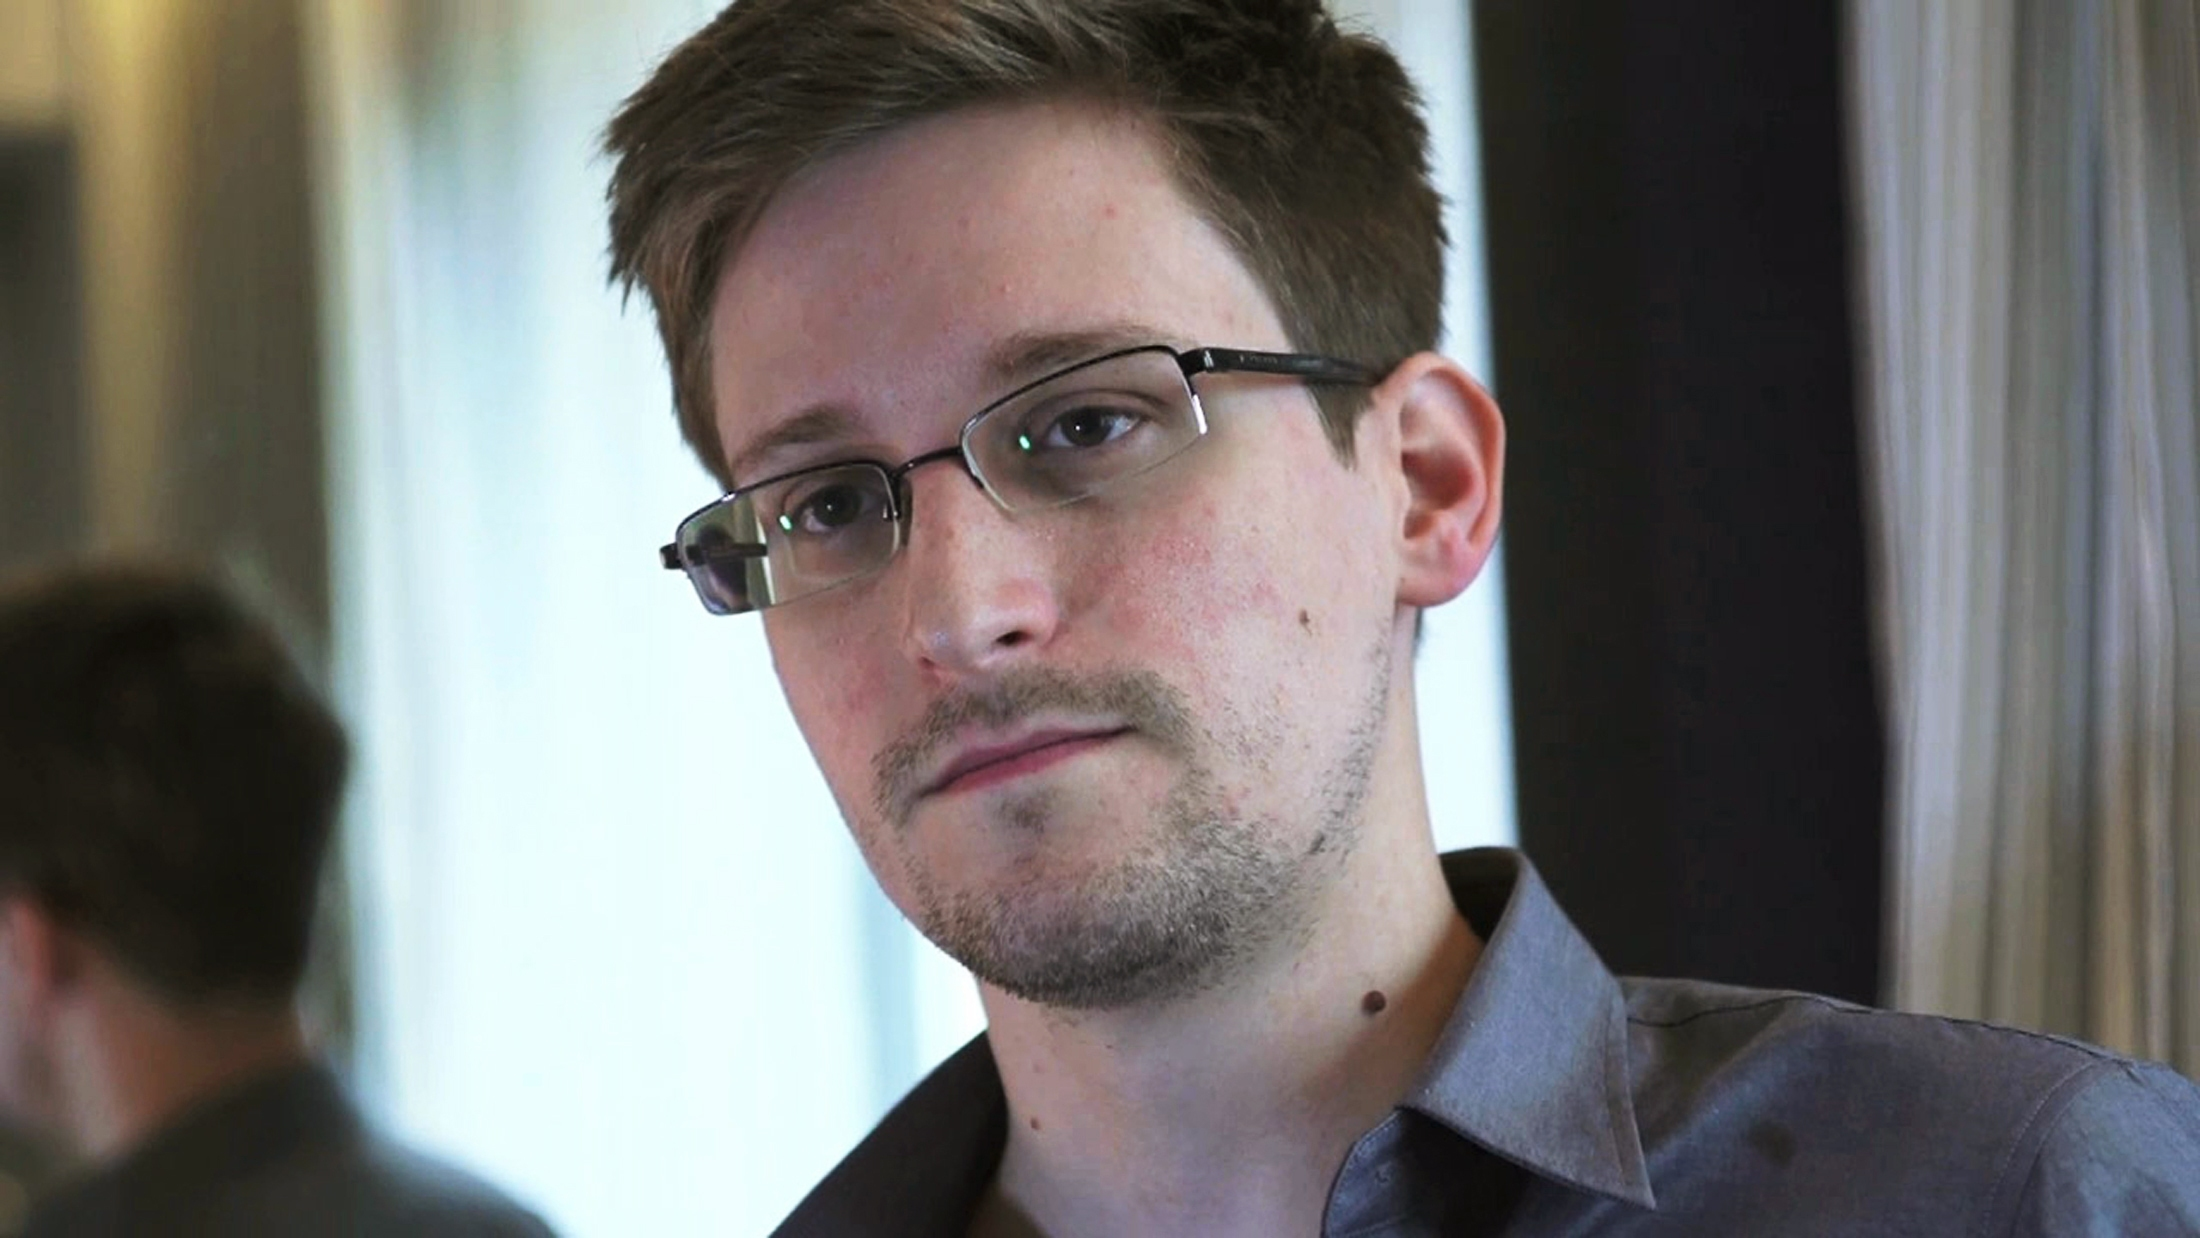 NSA whistle-blower Edward Snowden in a still image taken from video during an interview by the Guardian in his hotel room in Hong Kong on June 6, 2013